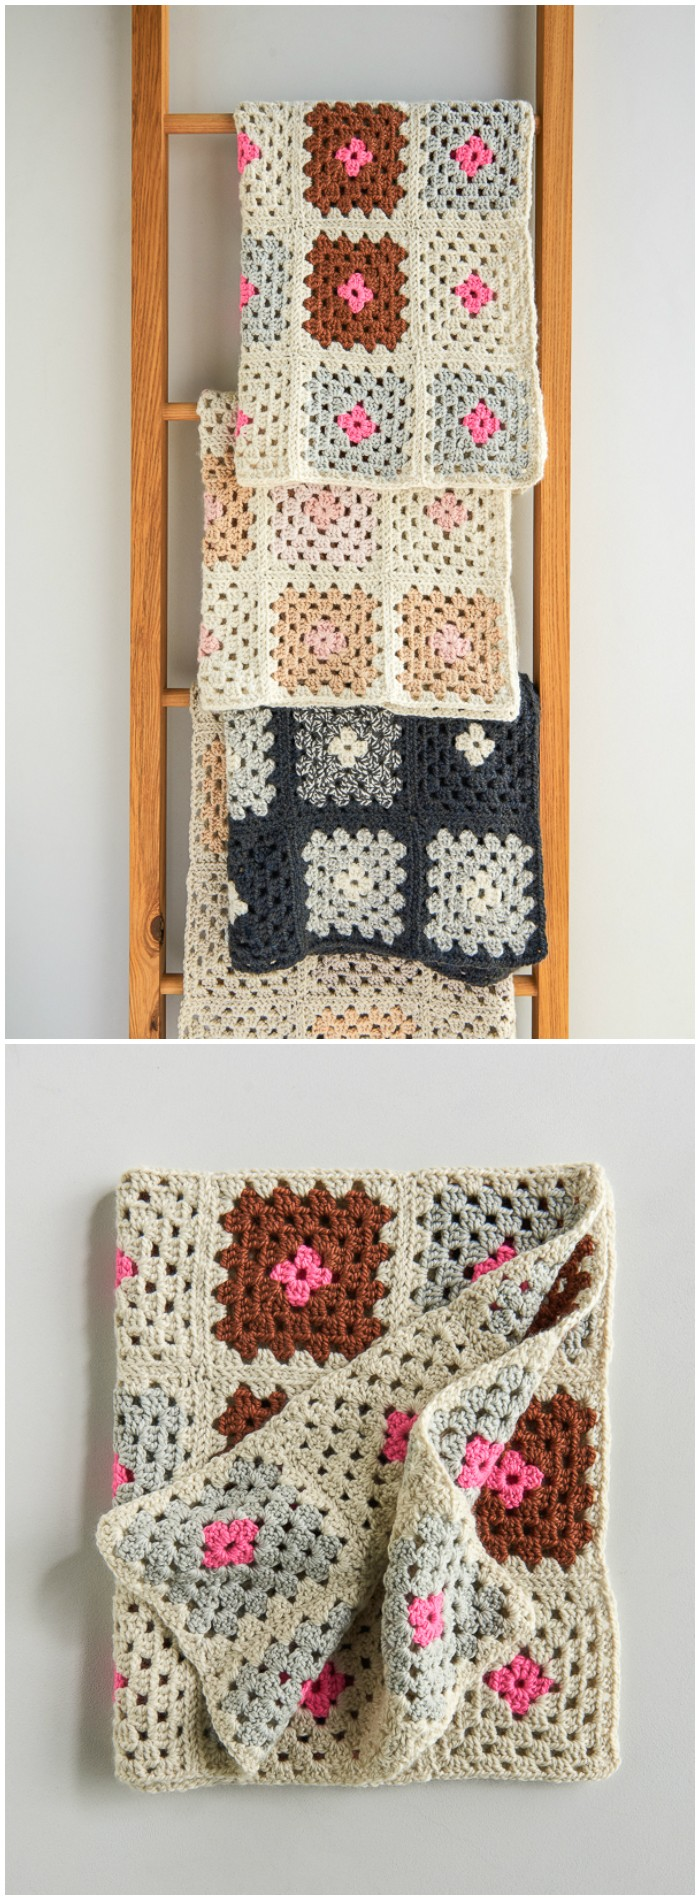 Granny Square Blanket in New Colors